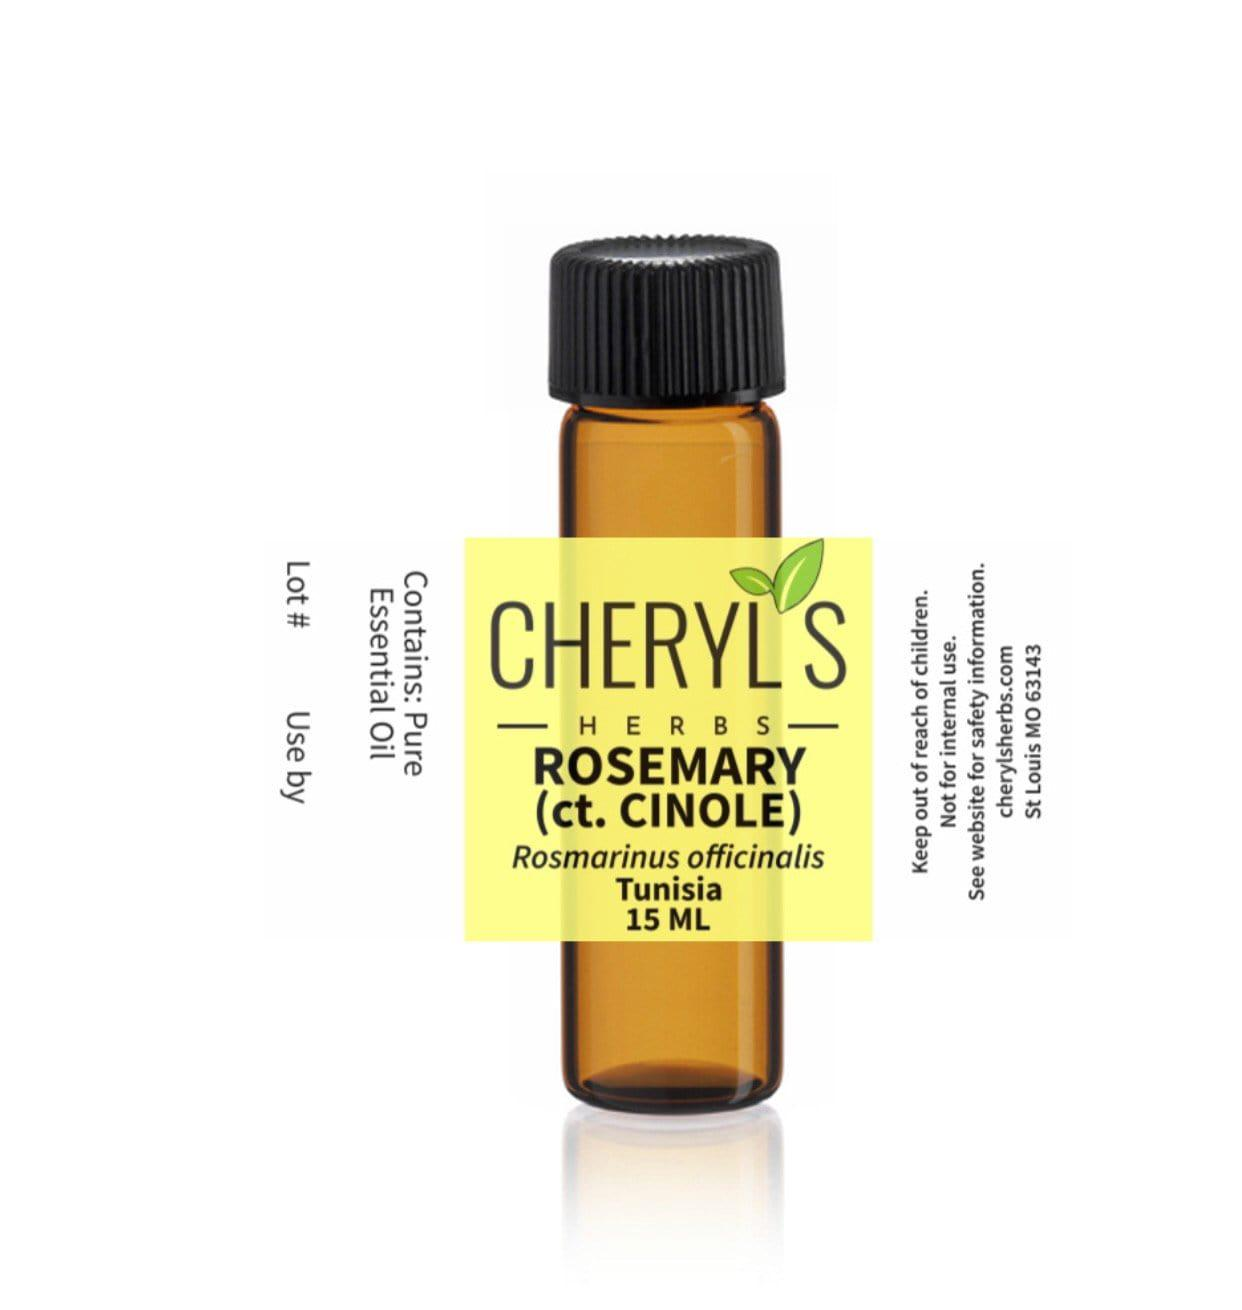 ROSEMARY ct. Cineole ESSENTIAL OIL - Cheryls Herbs